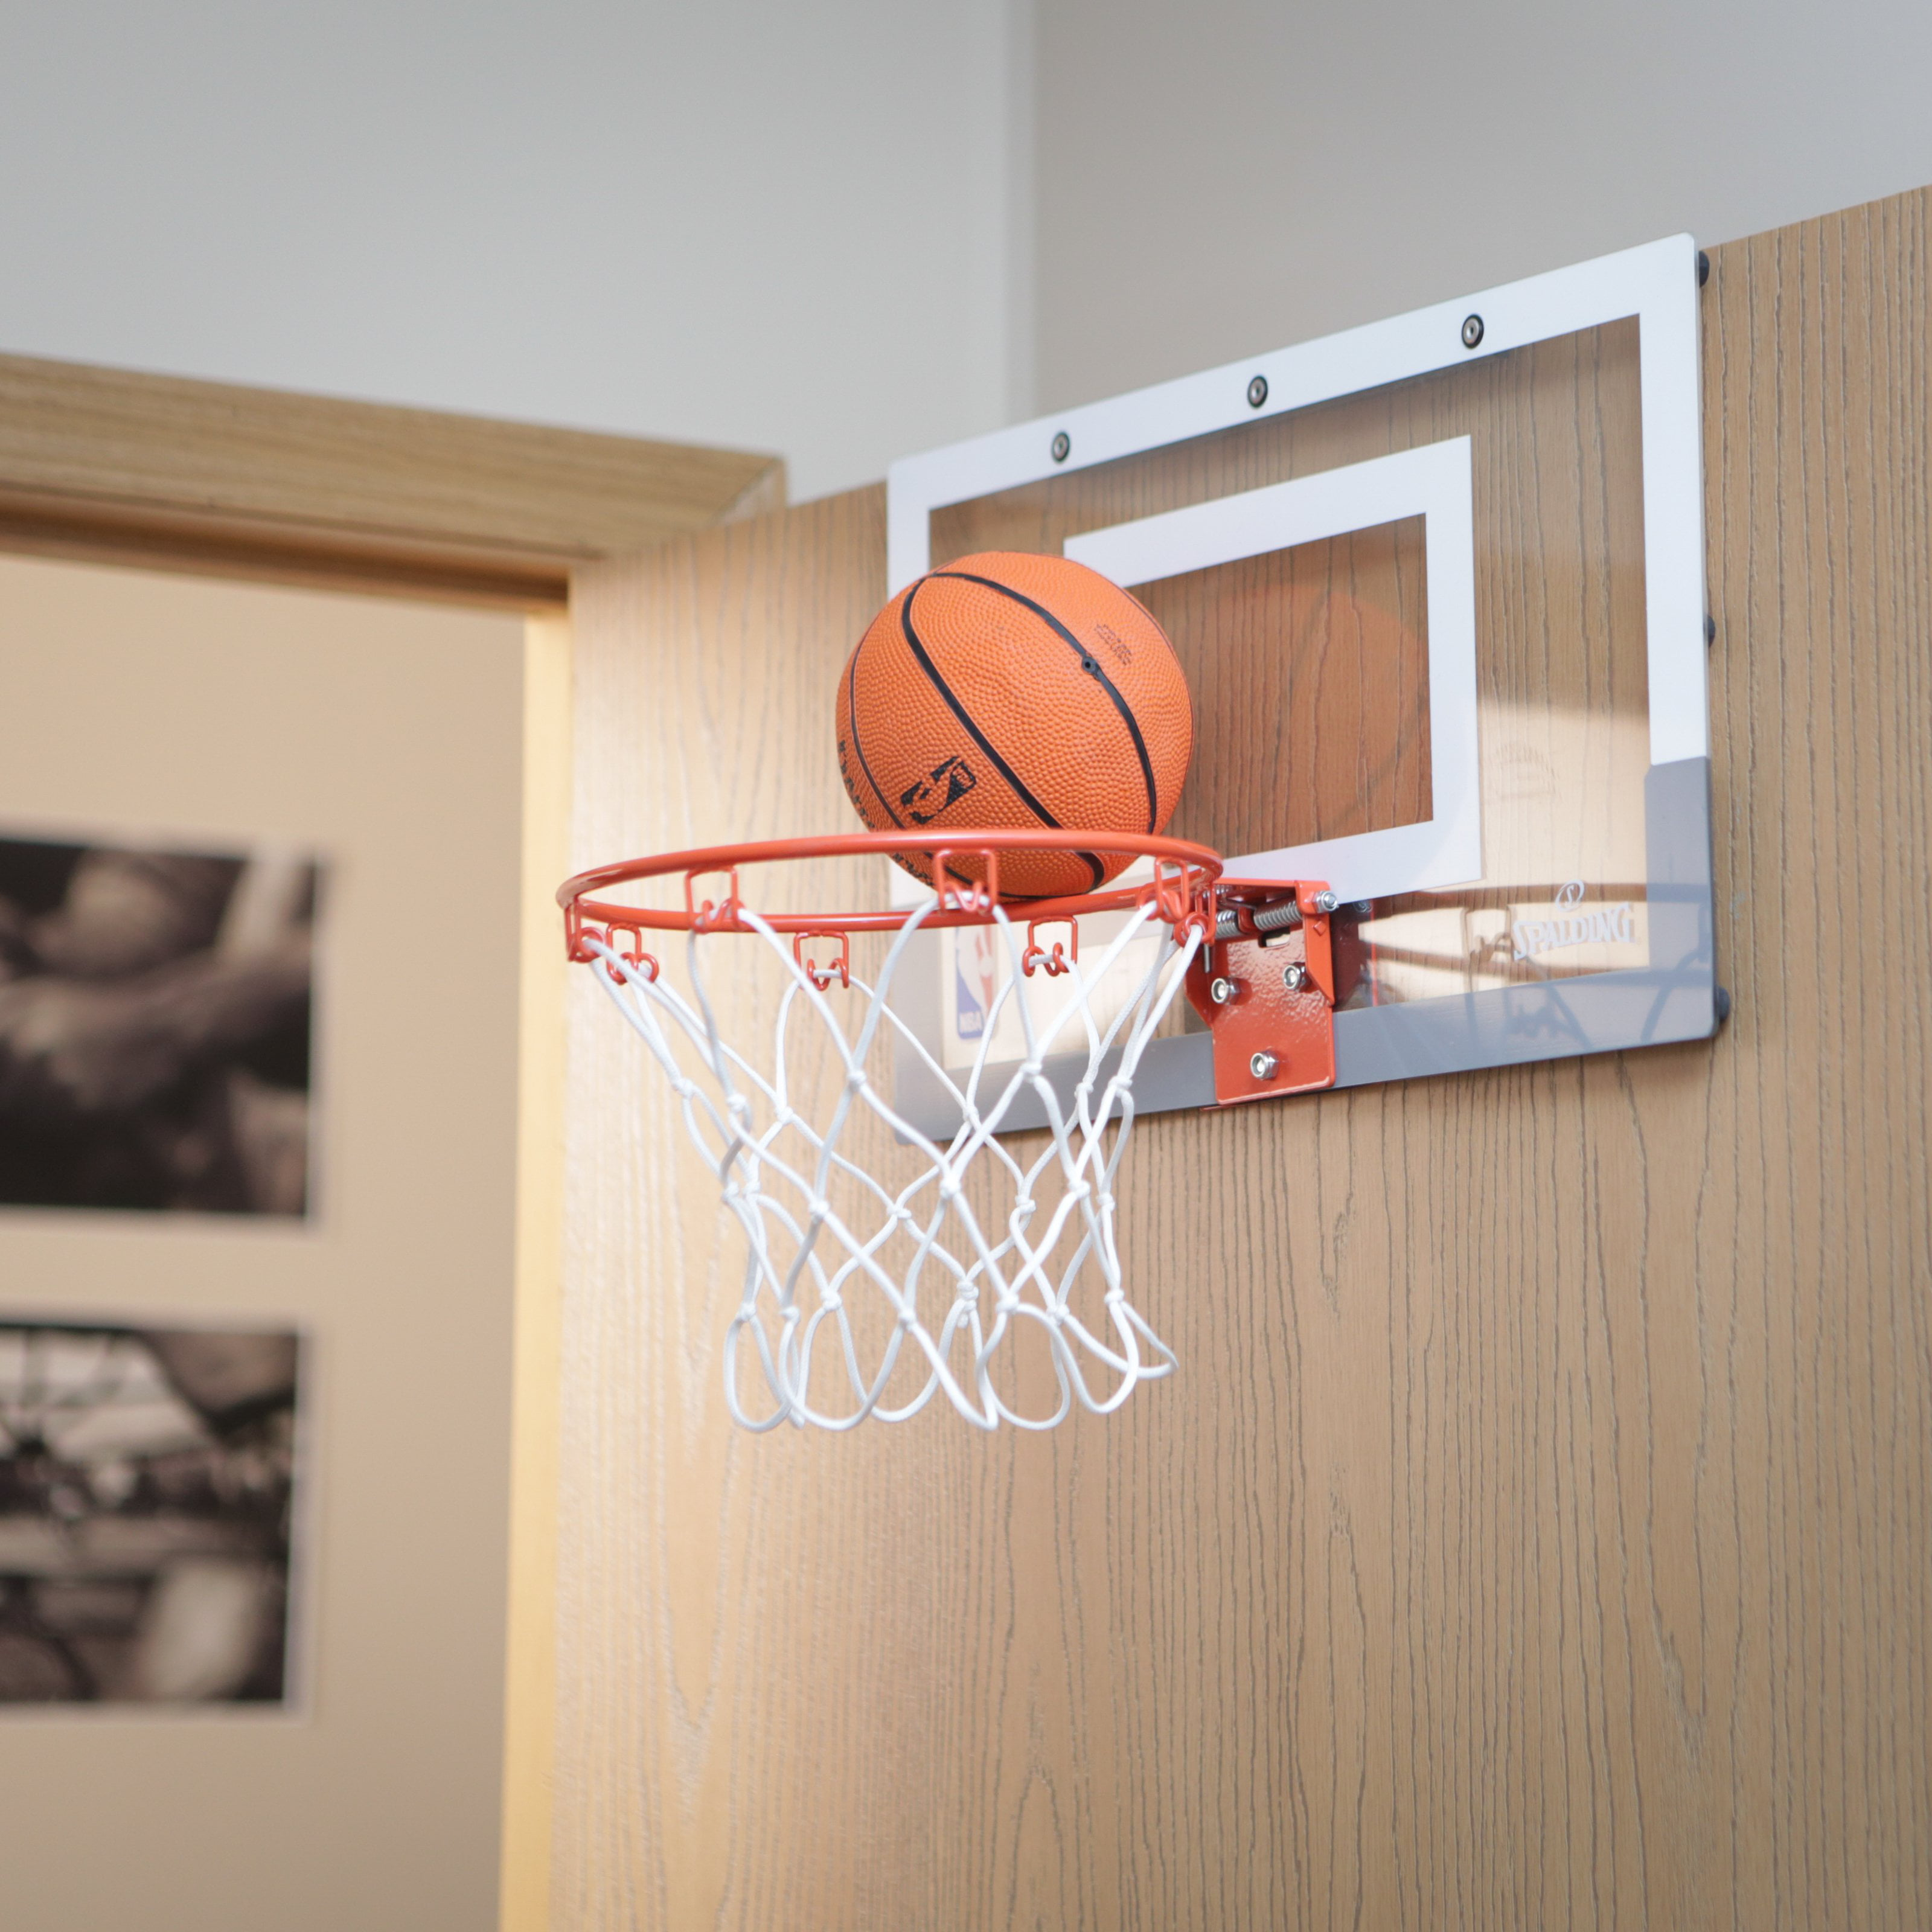 Sport Design Over The Door Basketball Instructions sport design over the door basketball instructions marvelous sport design over the door basketball instructions 18 Spalding Nba Slam Jam Over The Door Mini Hoop With Mini Basketball Walmartcom